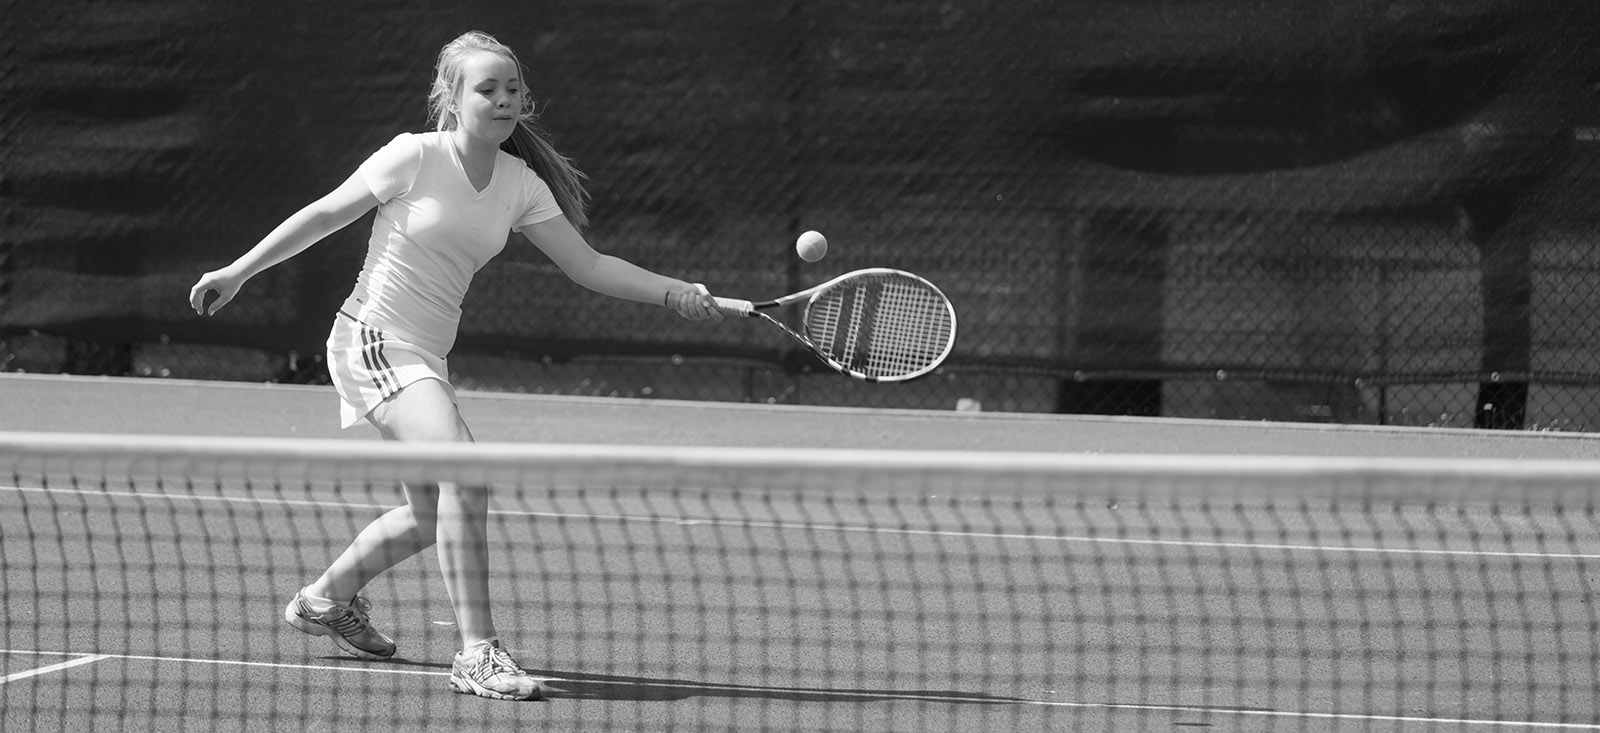 Adult Tennis Coaching London M25, South East